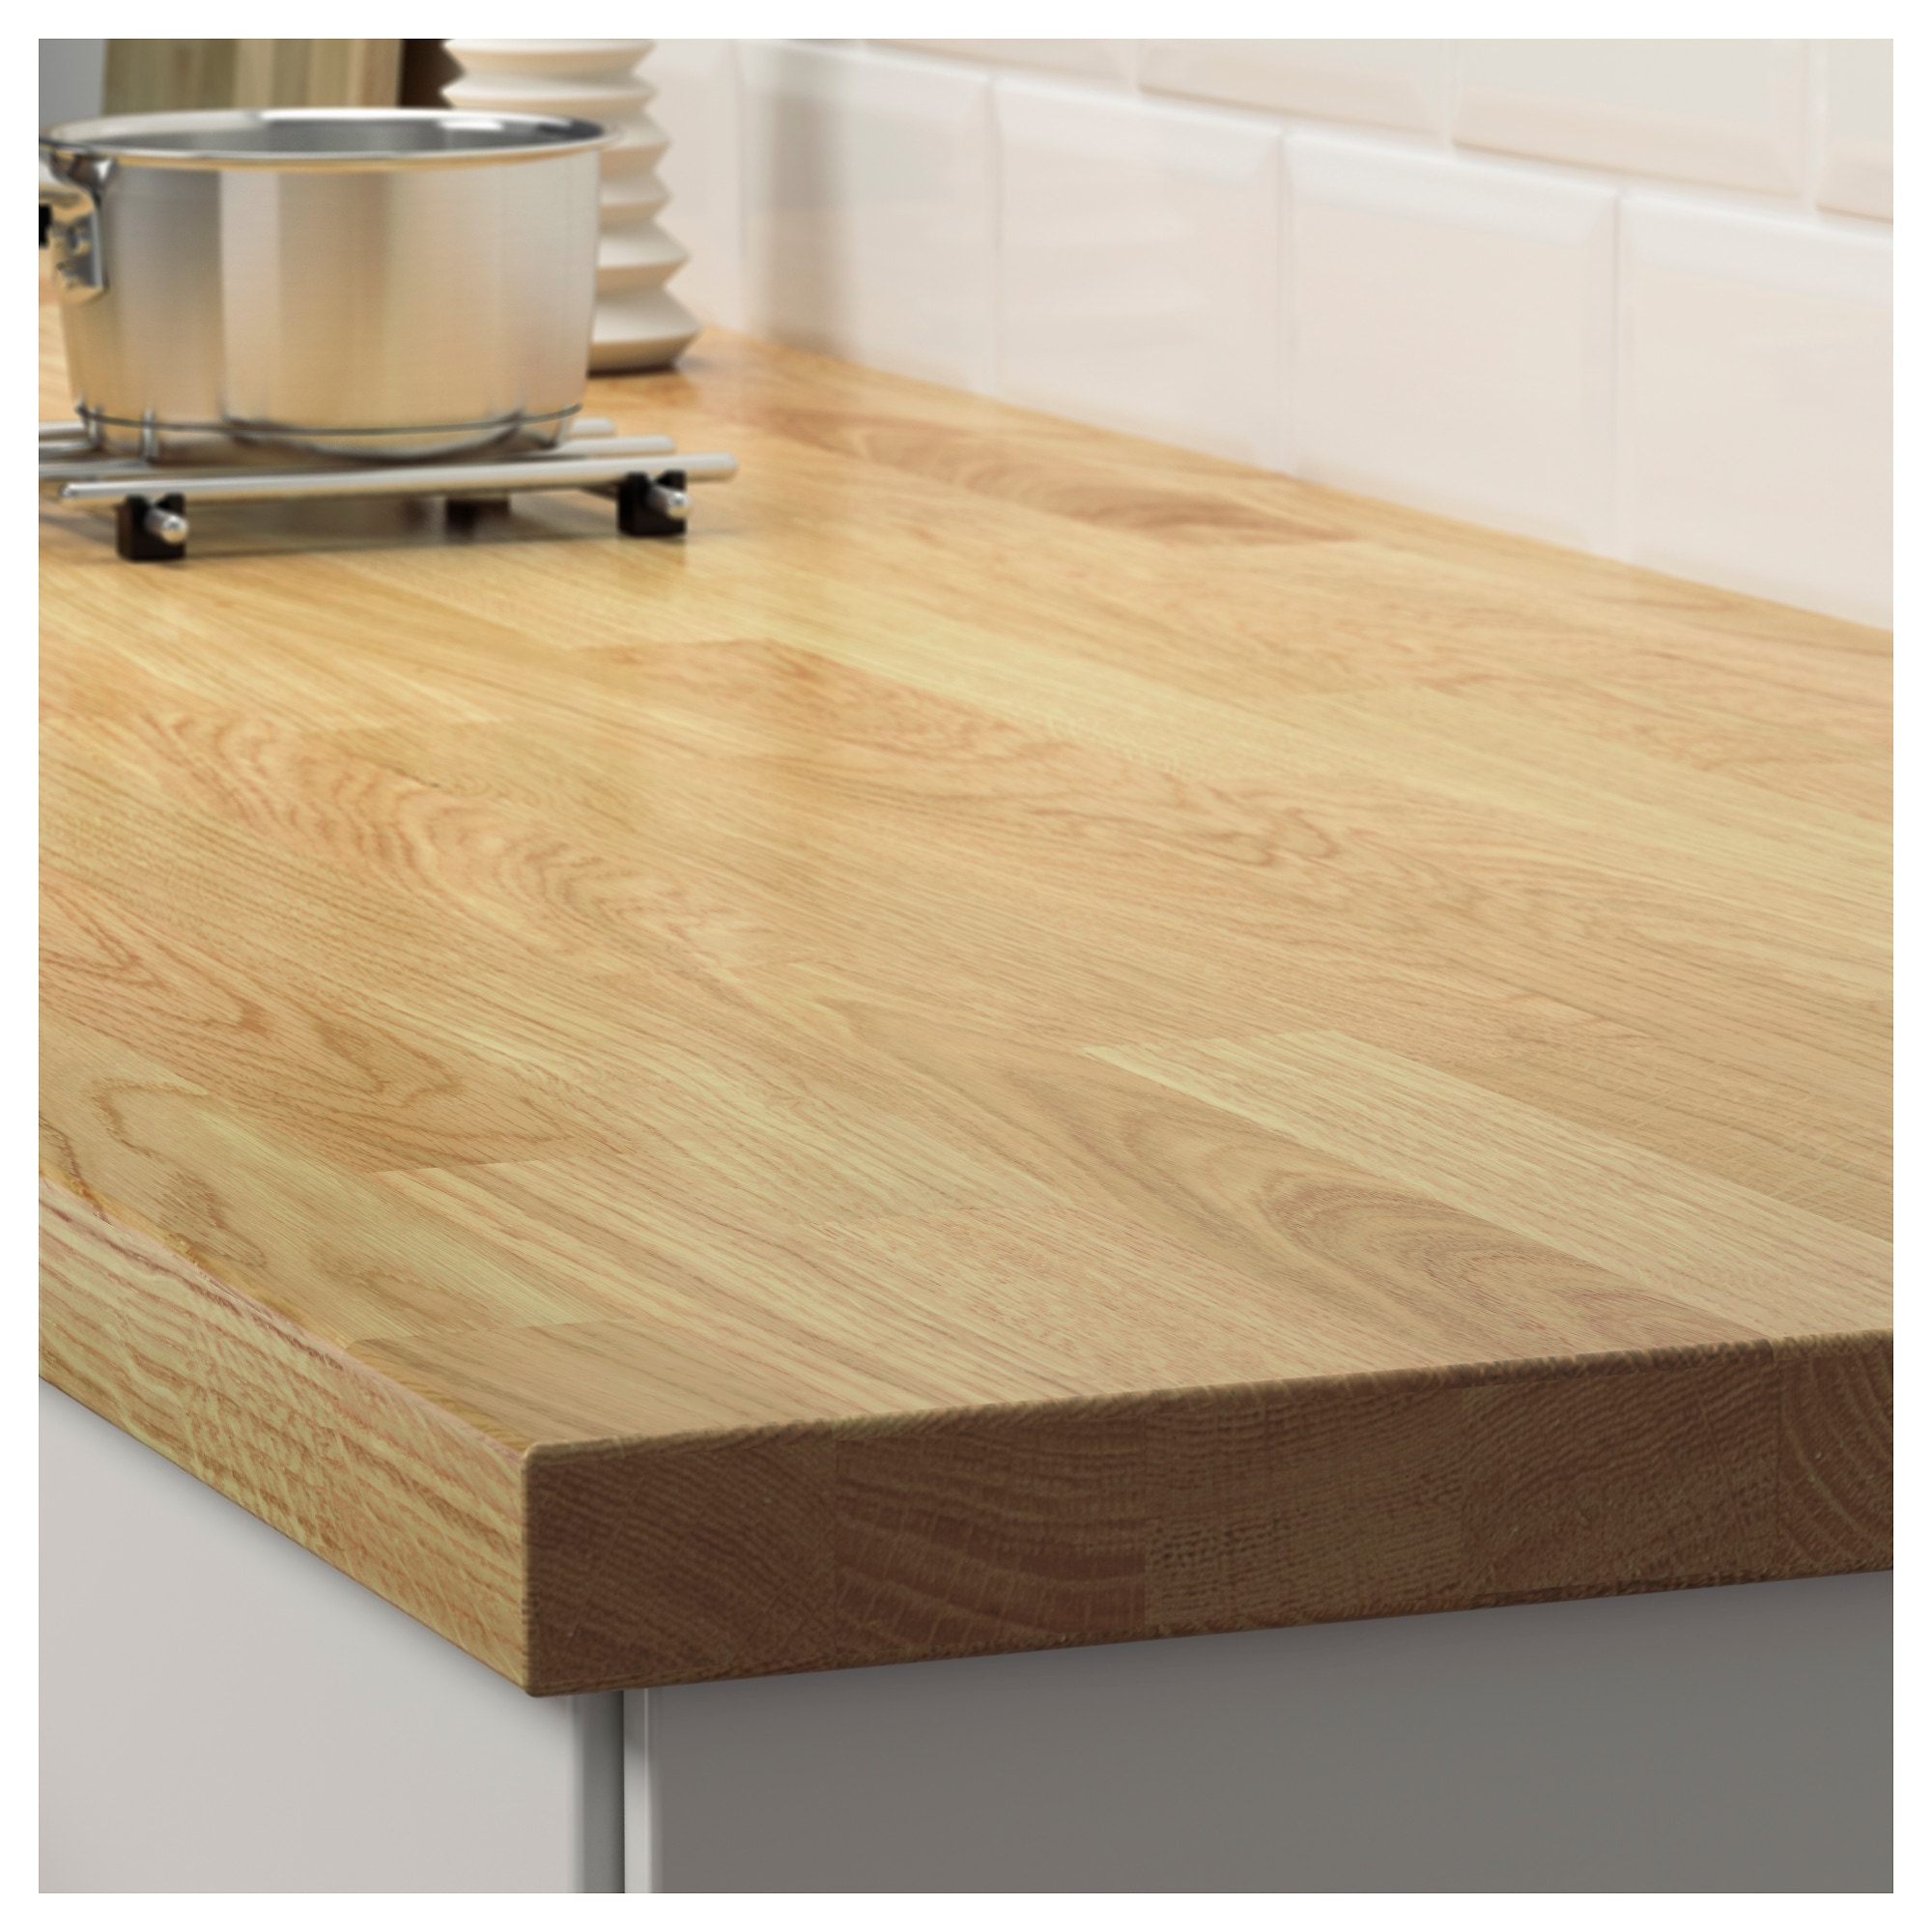 and shape butcher square including in decoration countertop fitting counter kitchen glass comely small charming using rectangular l charmin ikea wood white tops island ceiling block